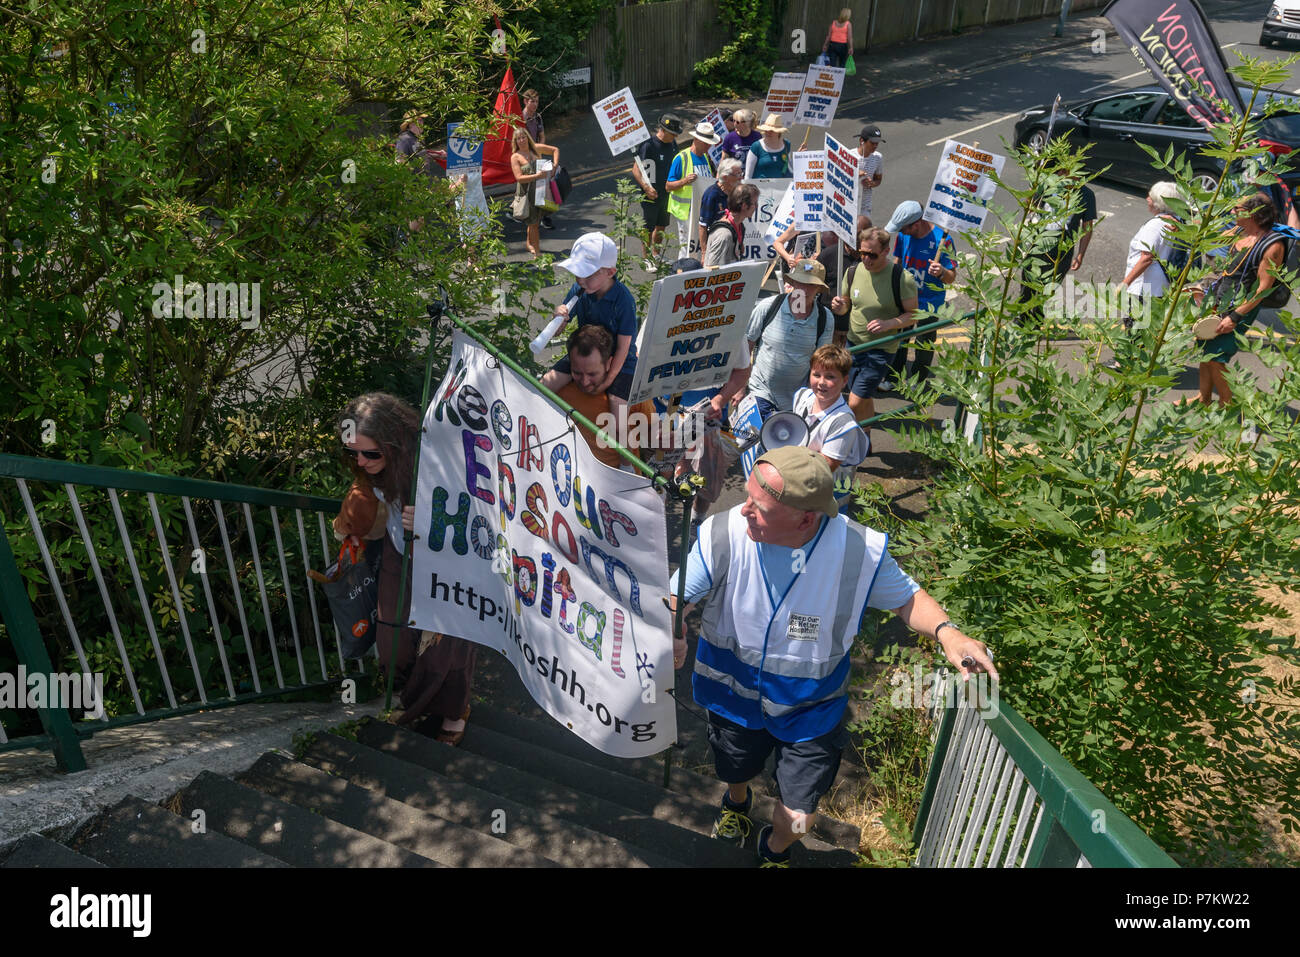 London, UK. 7th July 2018. Keep Our St Helier Hospital (KOSHH) campaigners against the closure of acute facilities at Epsom and St Helier Hospitals in south London cross a footbrindge on their march to celebrate the 70th Birthday of the NHS from Sutton to a rally in front of St Helier Hospital.  The closures are prompted by government cuts which call for huge savings by the trust, and would l Credit: Peter Marshall/Alamy Live NewsStock Photo